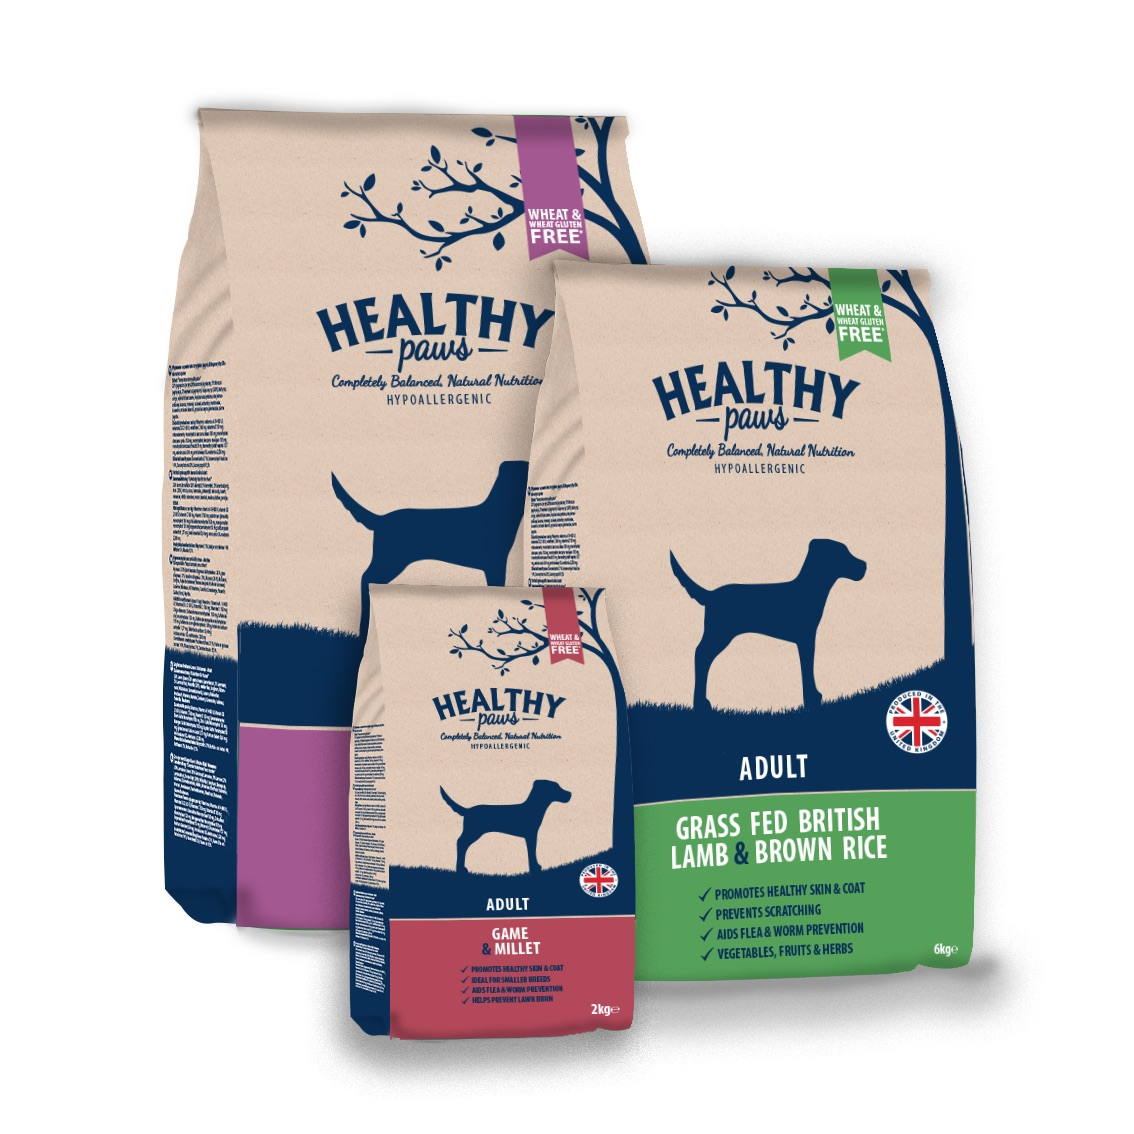 Healthy Paws Adult Bags